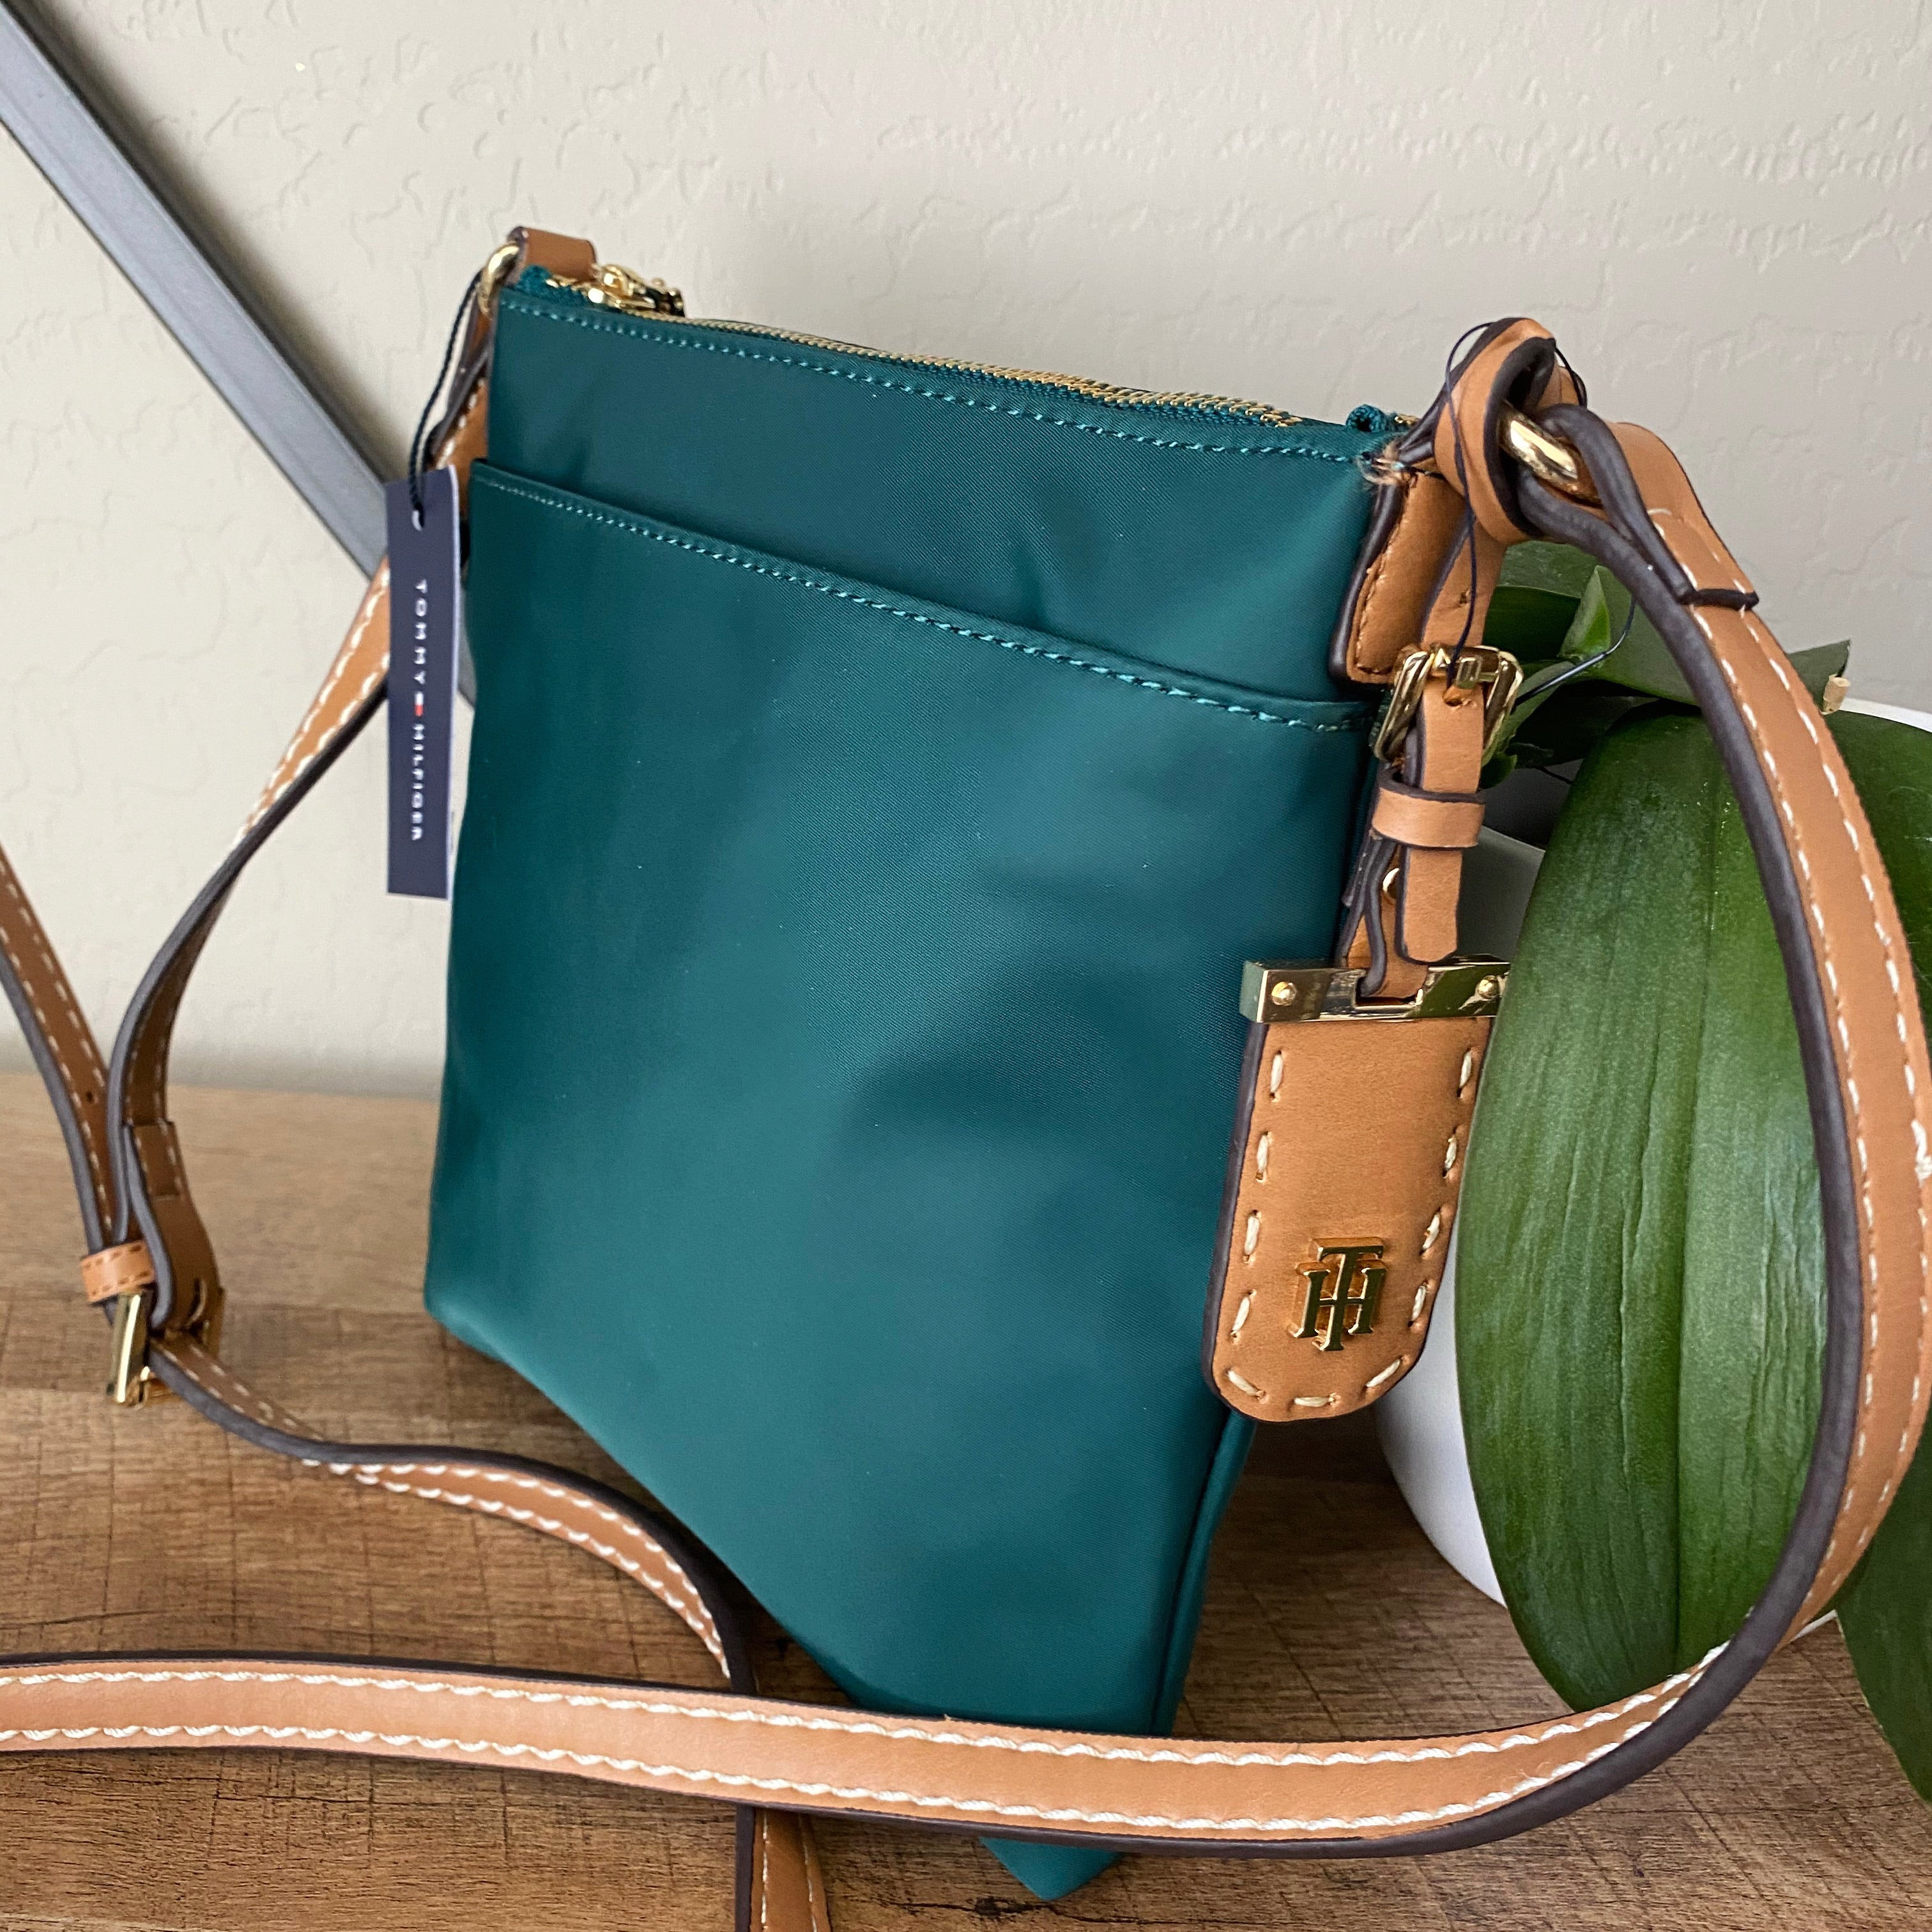 Tommy Hilfiger Green Nylon Crossbody Bag